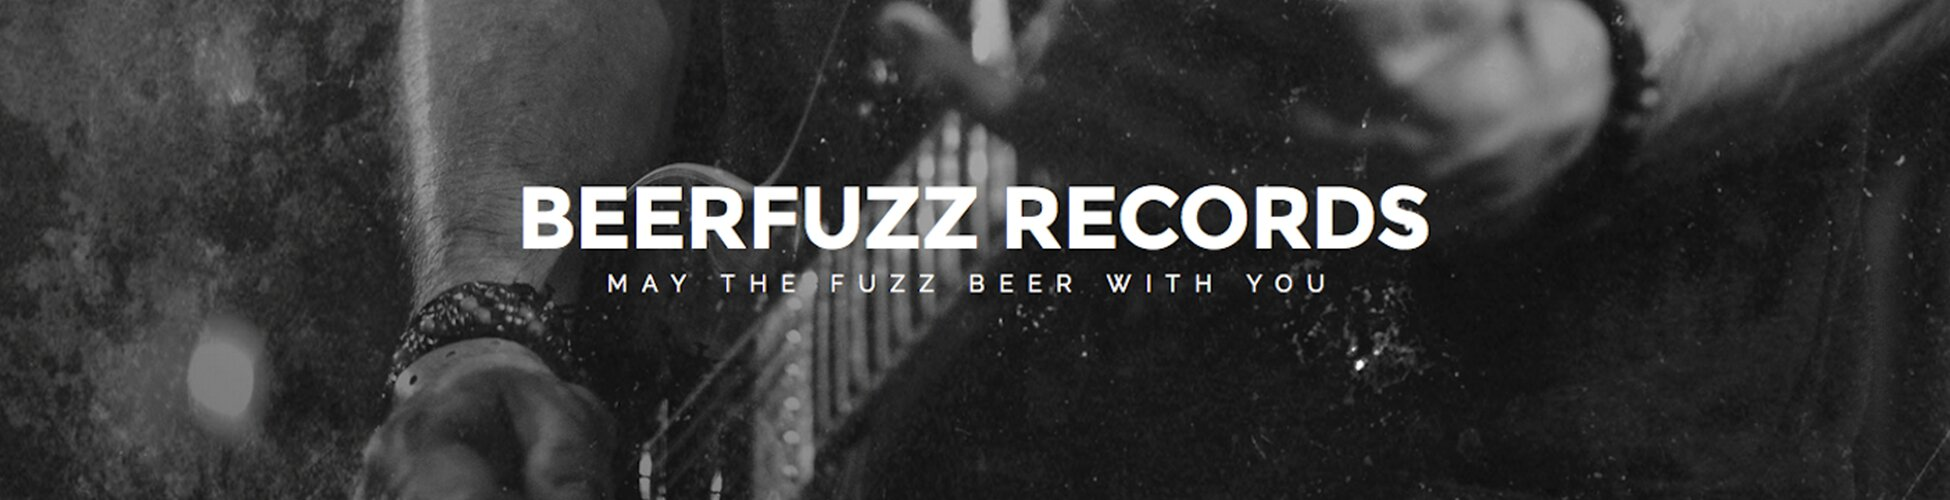 Beerfuzz Records